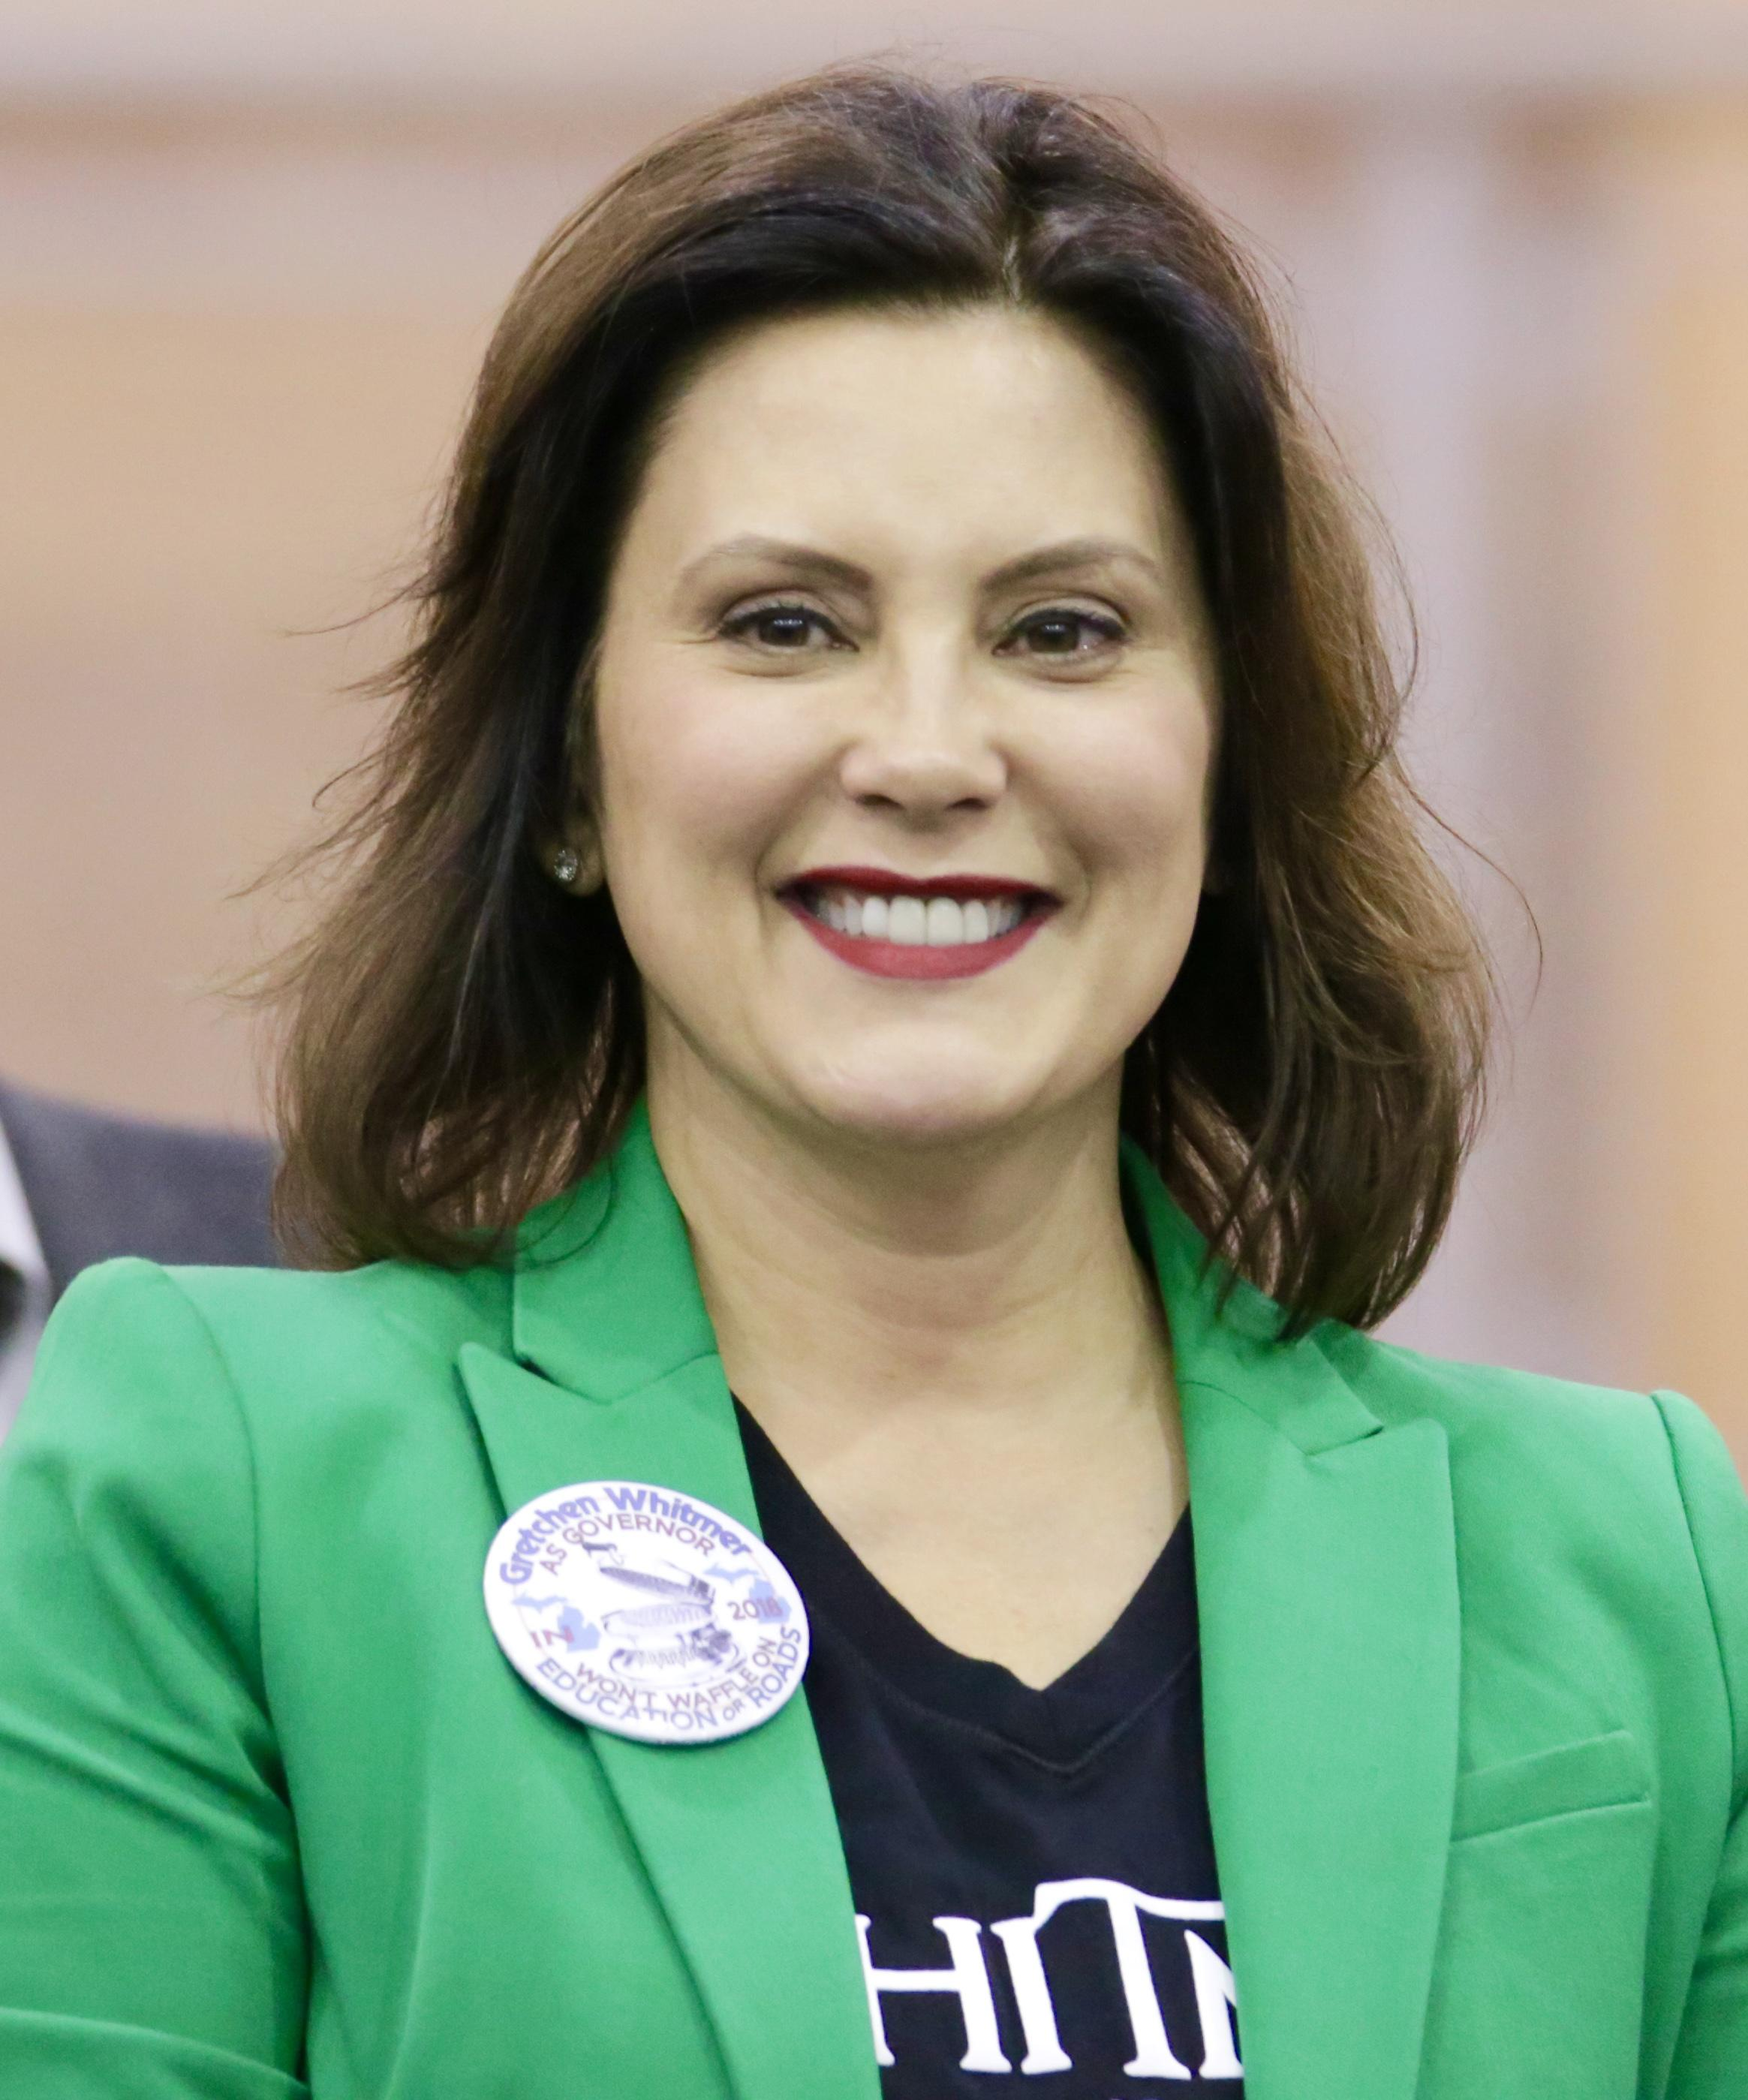 Michigan Governor Whitmer To Deliver Her First State Of The State Address Wemu